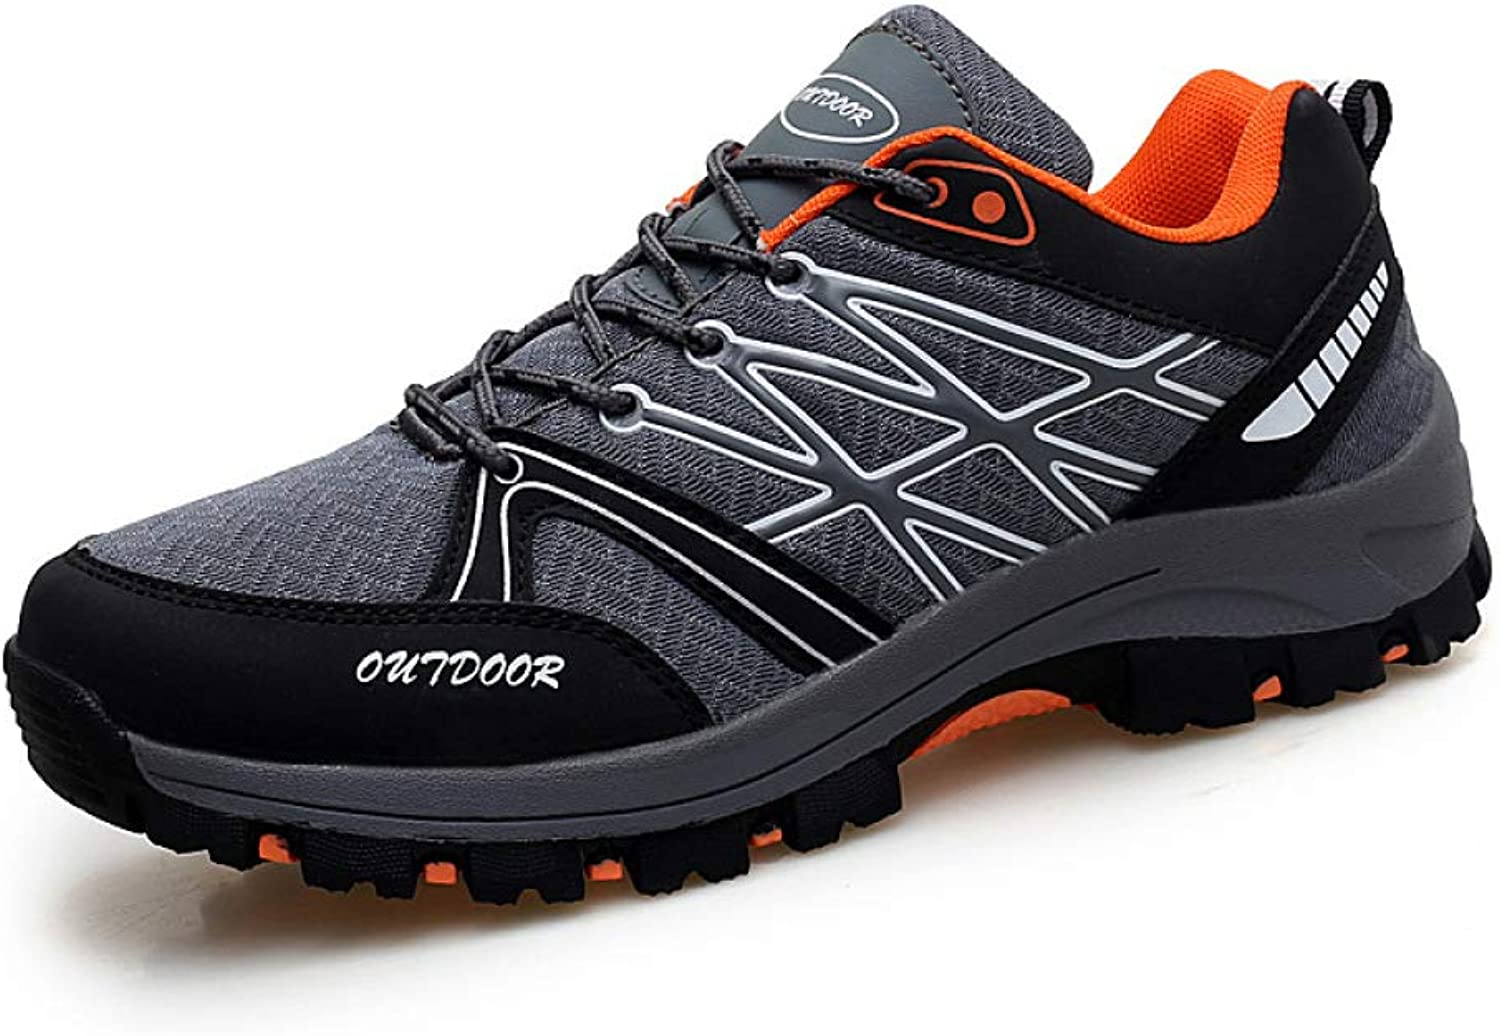 shoes Outdoor Hiking, Non-Slip Breathable Men's Sports Large Size